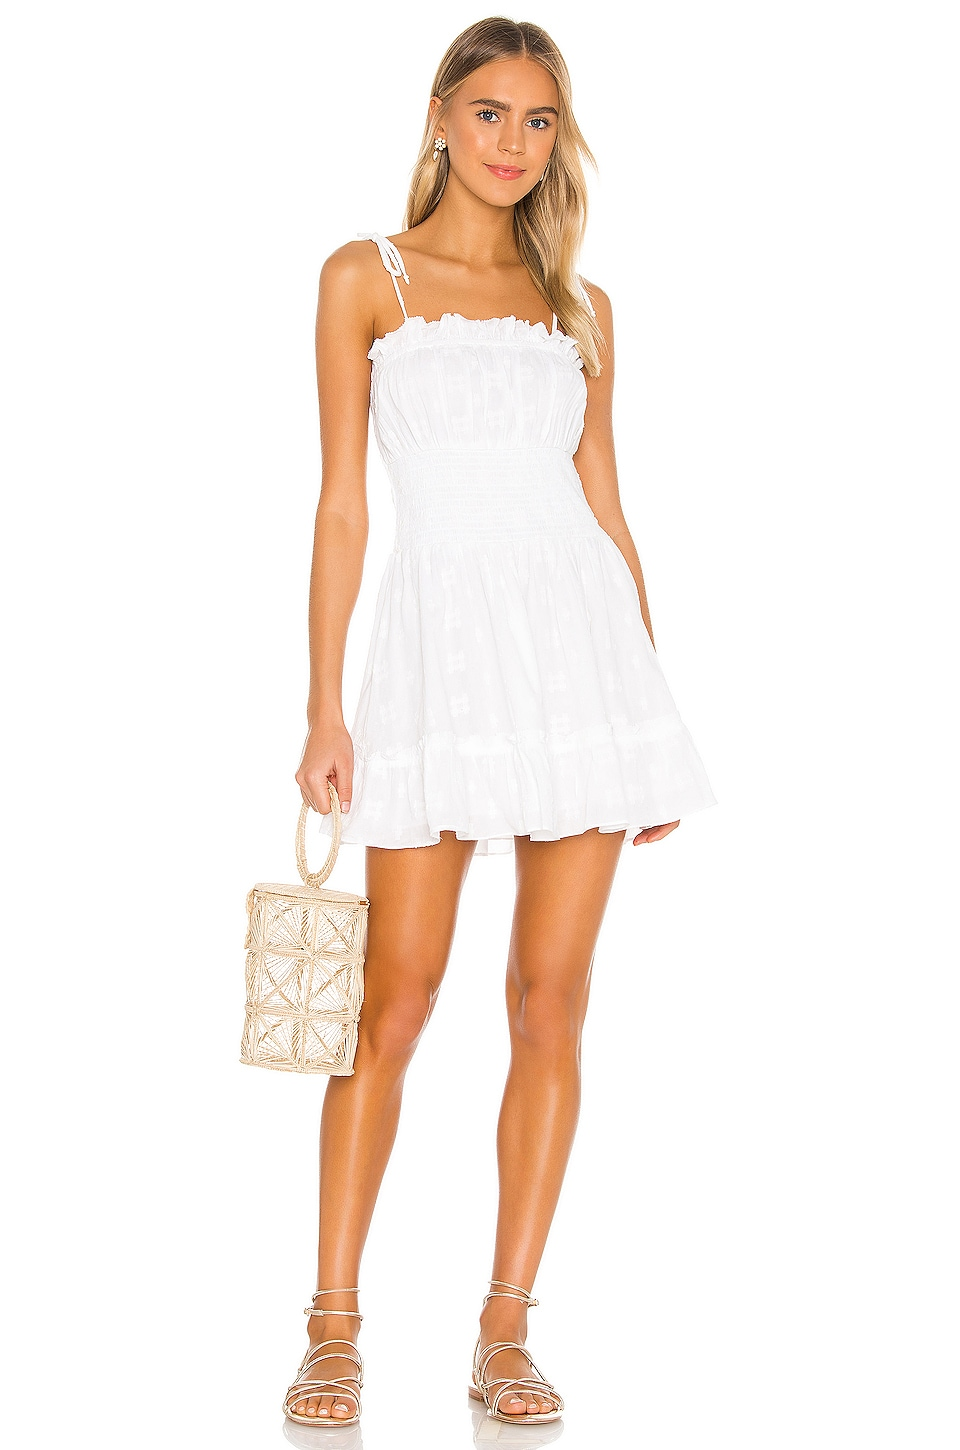 Marrakesh Mini Dress             Cleobella                                                                                                       CA$ 226.98 14